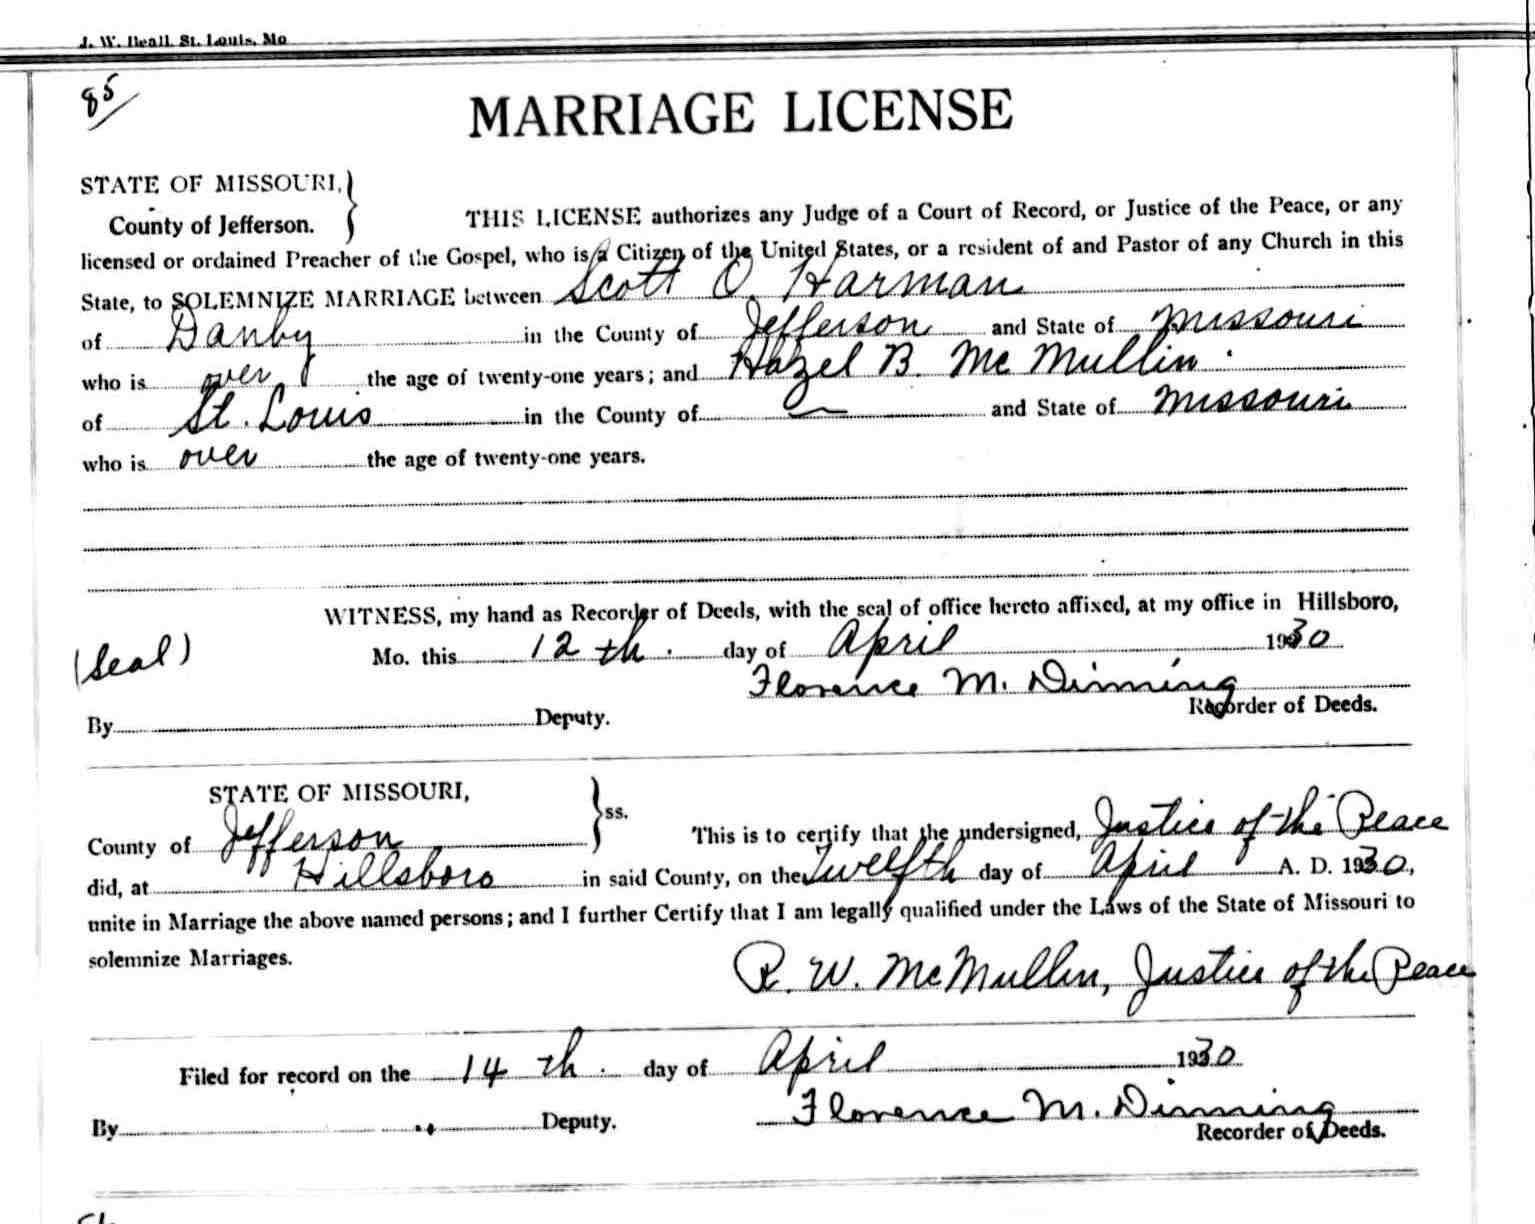 Lyndon and lady bird johnson marriage license records of bexar lyndon and lady bird johnson marriage license records of bexar county texas volume 58 page 460 dated nov 17 1934 history san antonio tx pinterest xflitez Gallery